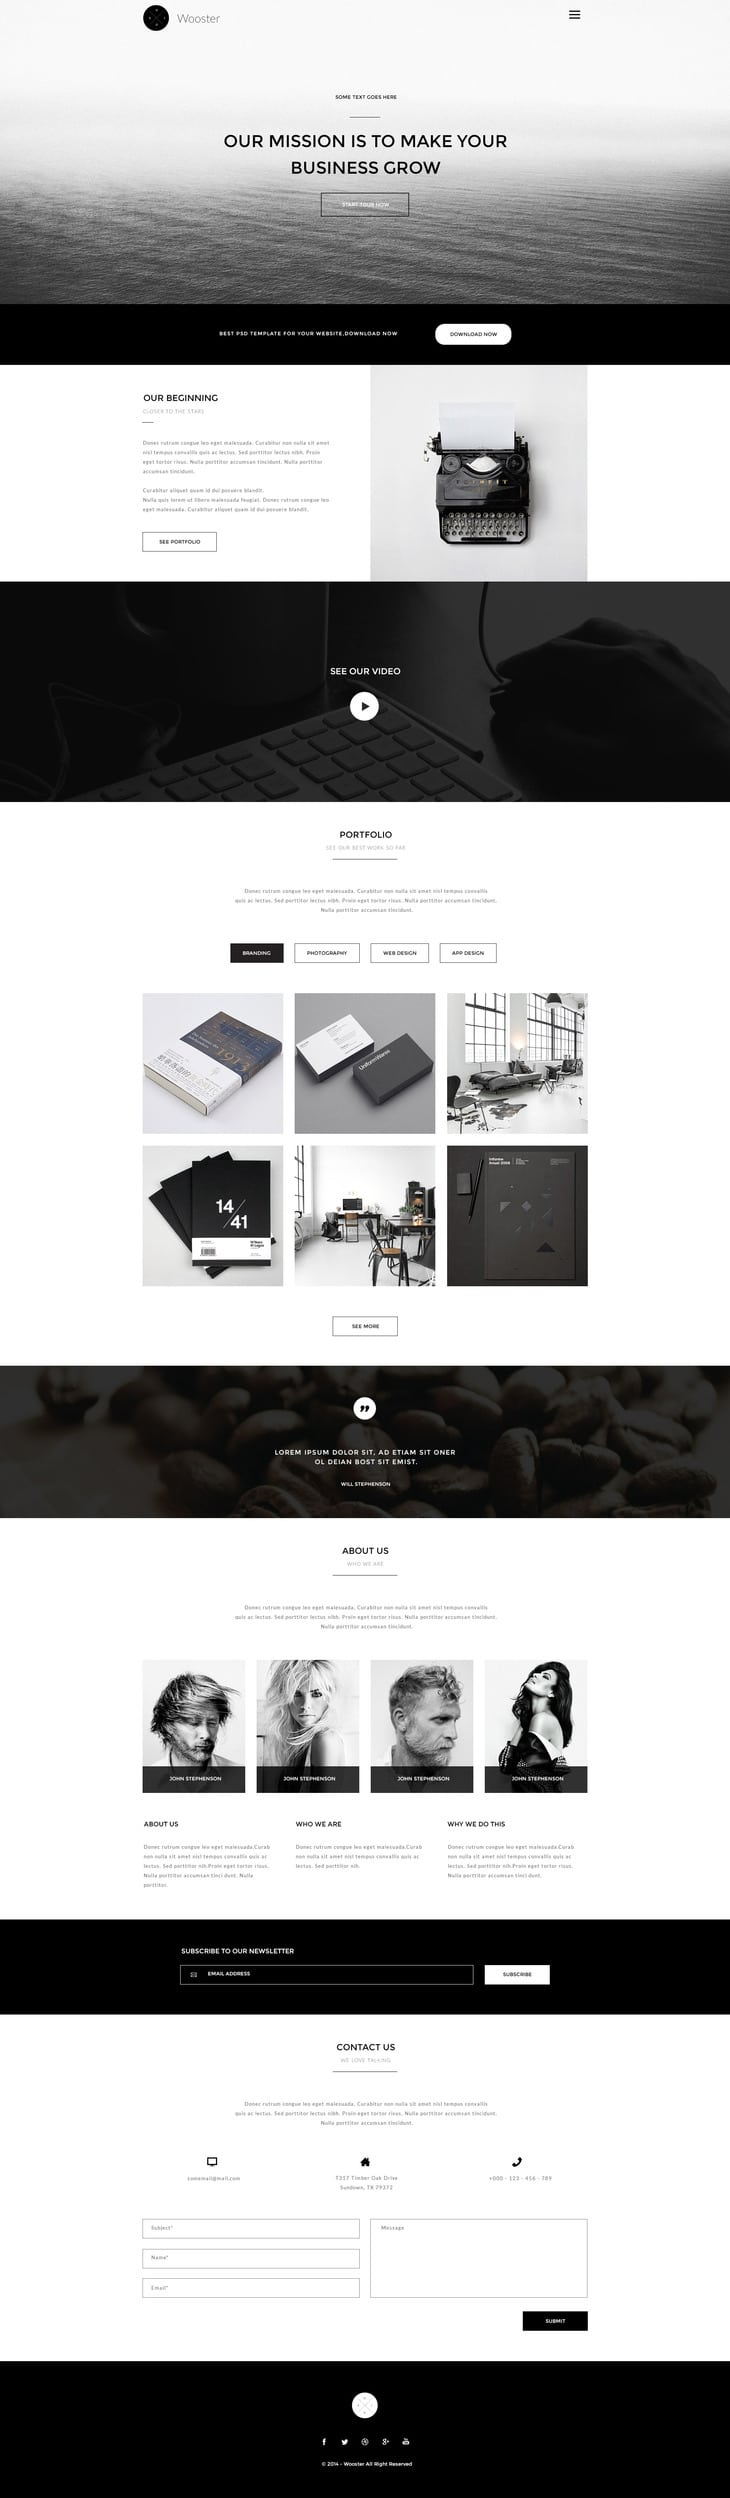 Wooster---Vintage Single Page Web Template PSD